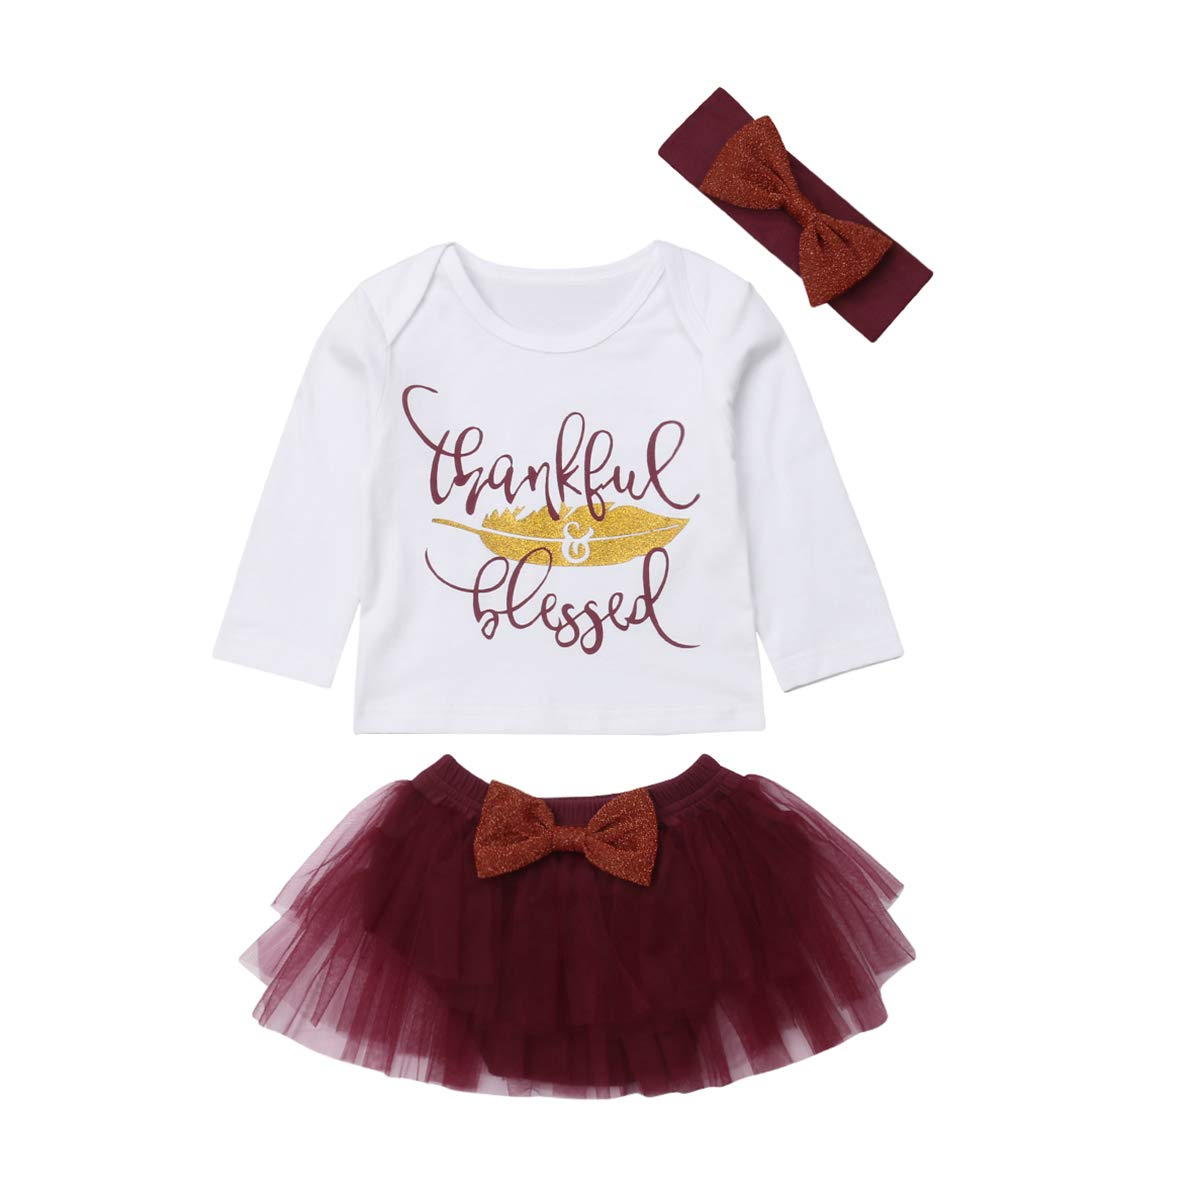 Bowknot Headband Outfits Thanksgiving Party Clothing Set 3Pcs Baby Girl Long Sleeve Thankful Blessed Print Top Tutu Skirt